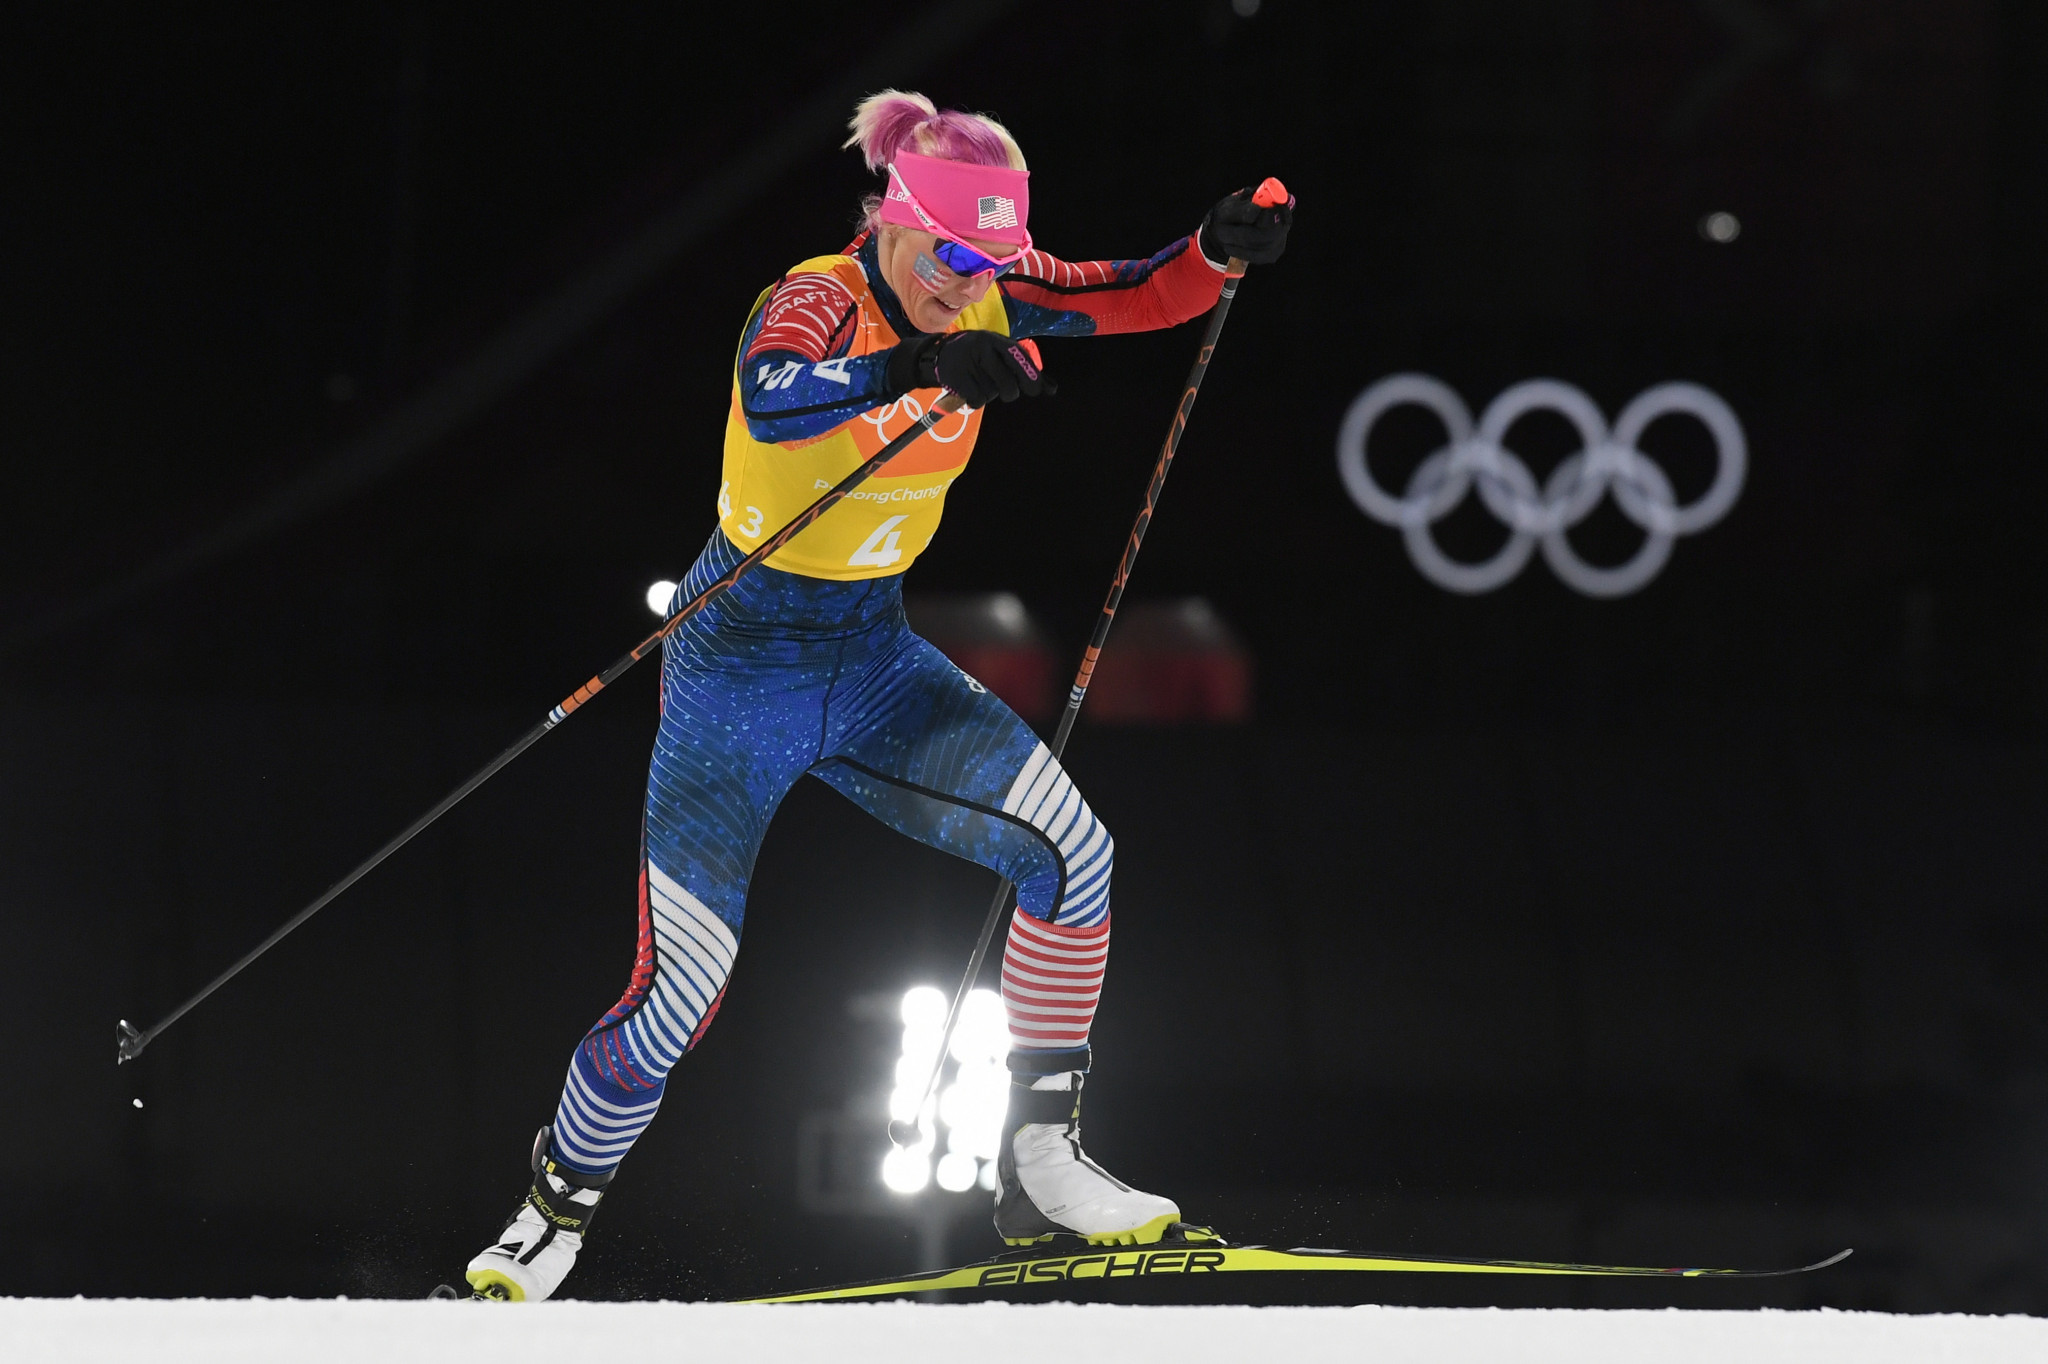 Kikkan Randall boasts Olympic, world and World Cup titles ©Getty Images